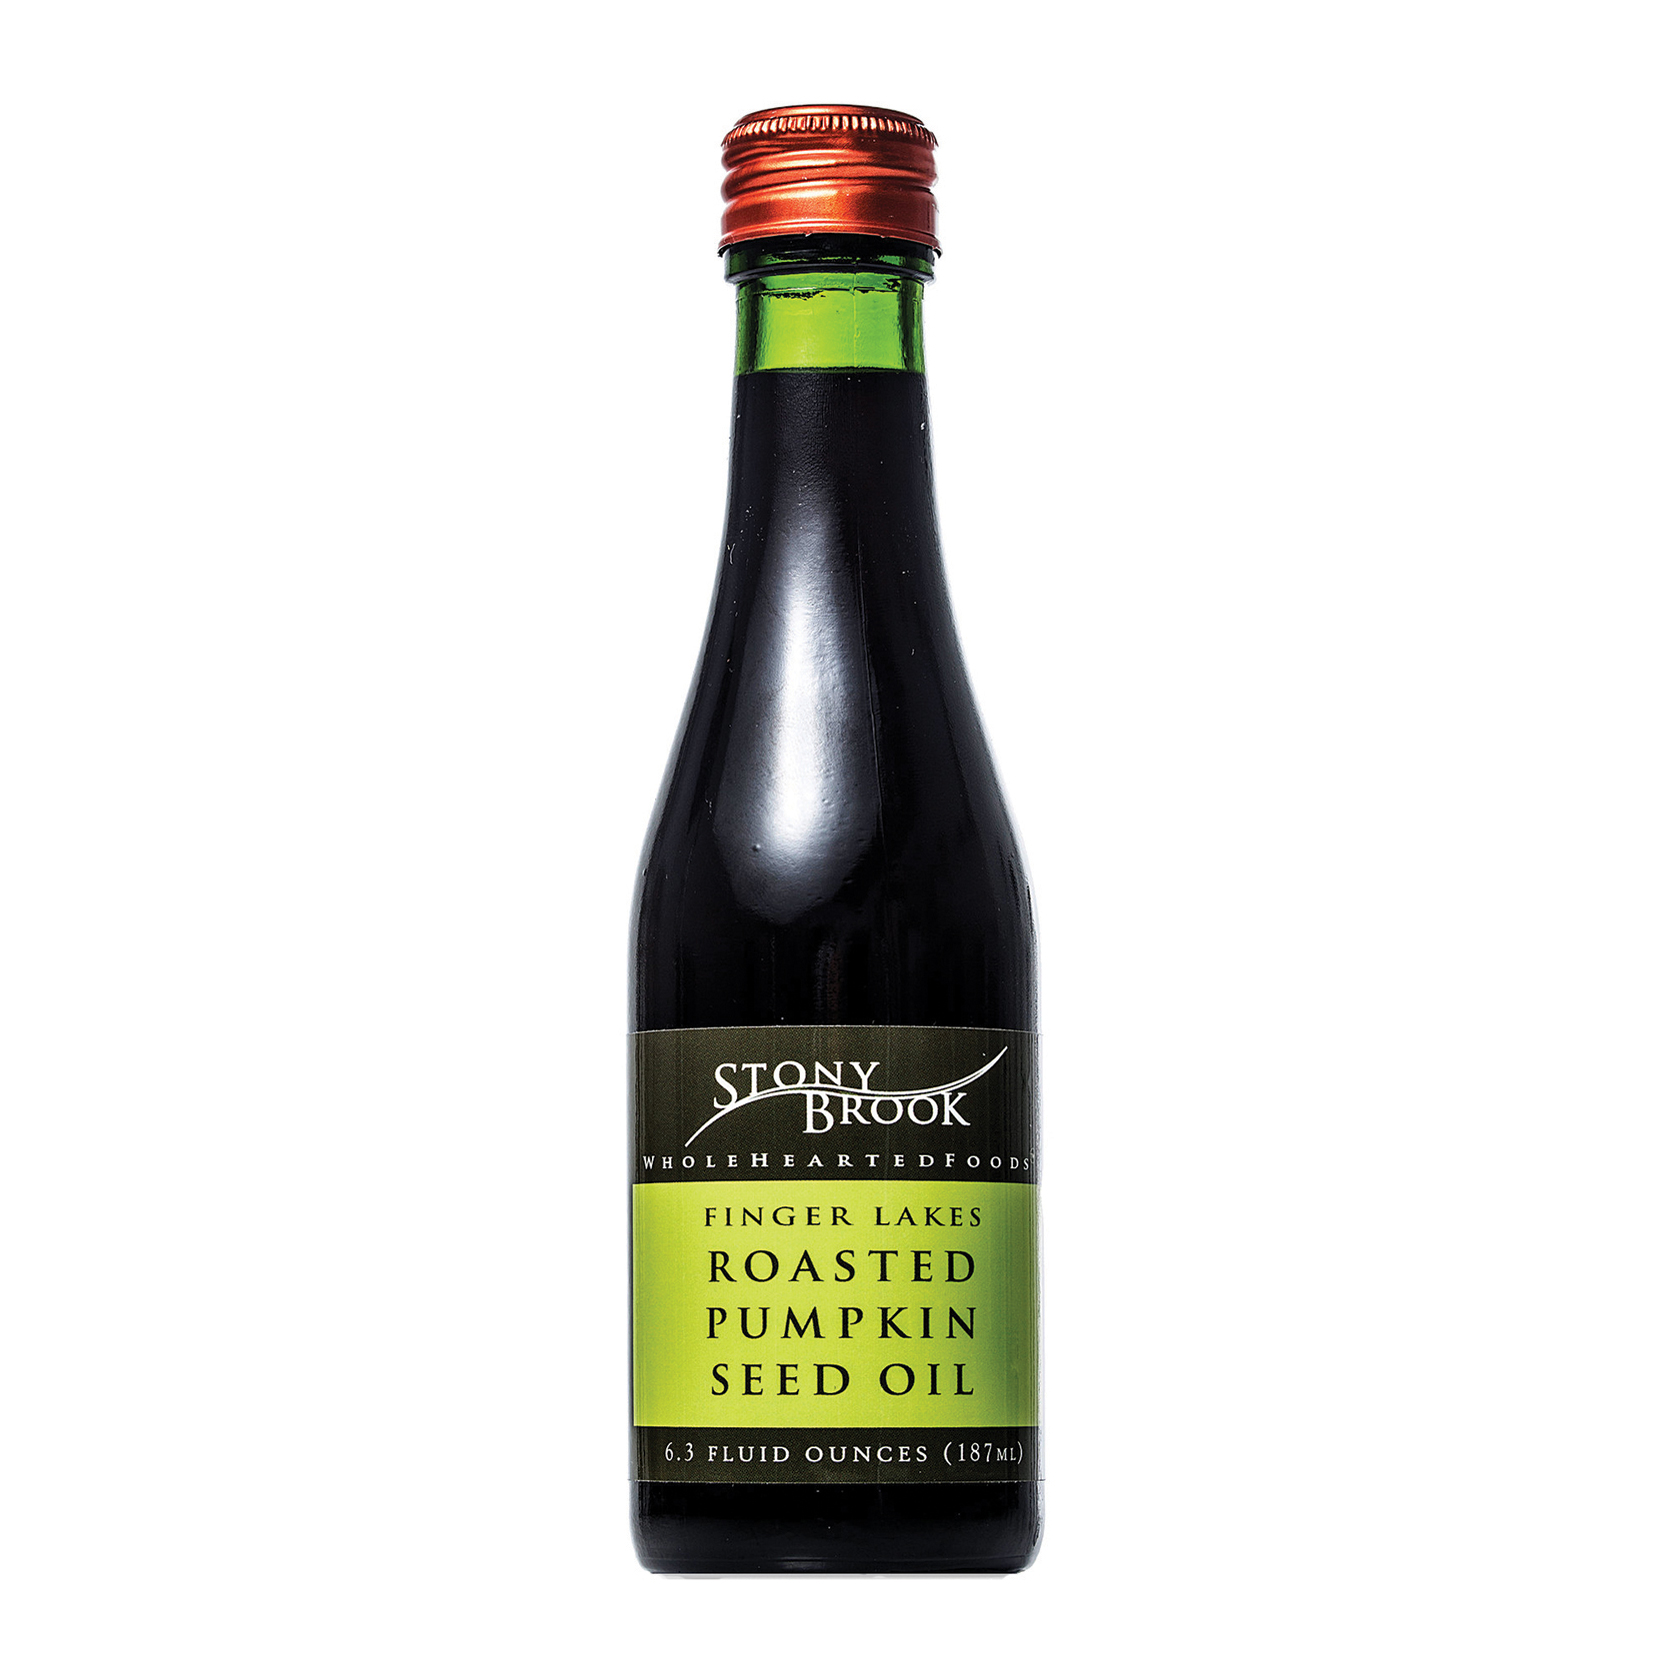 Stony Brook Roasted Pumpkin Seed Oil